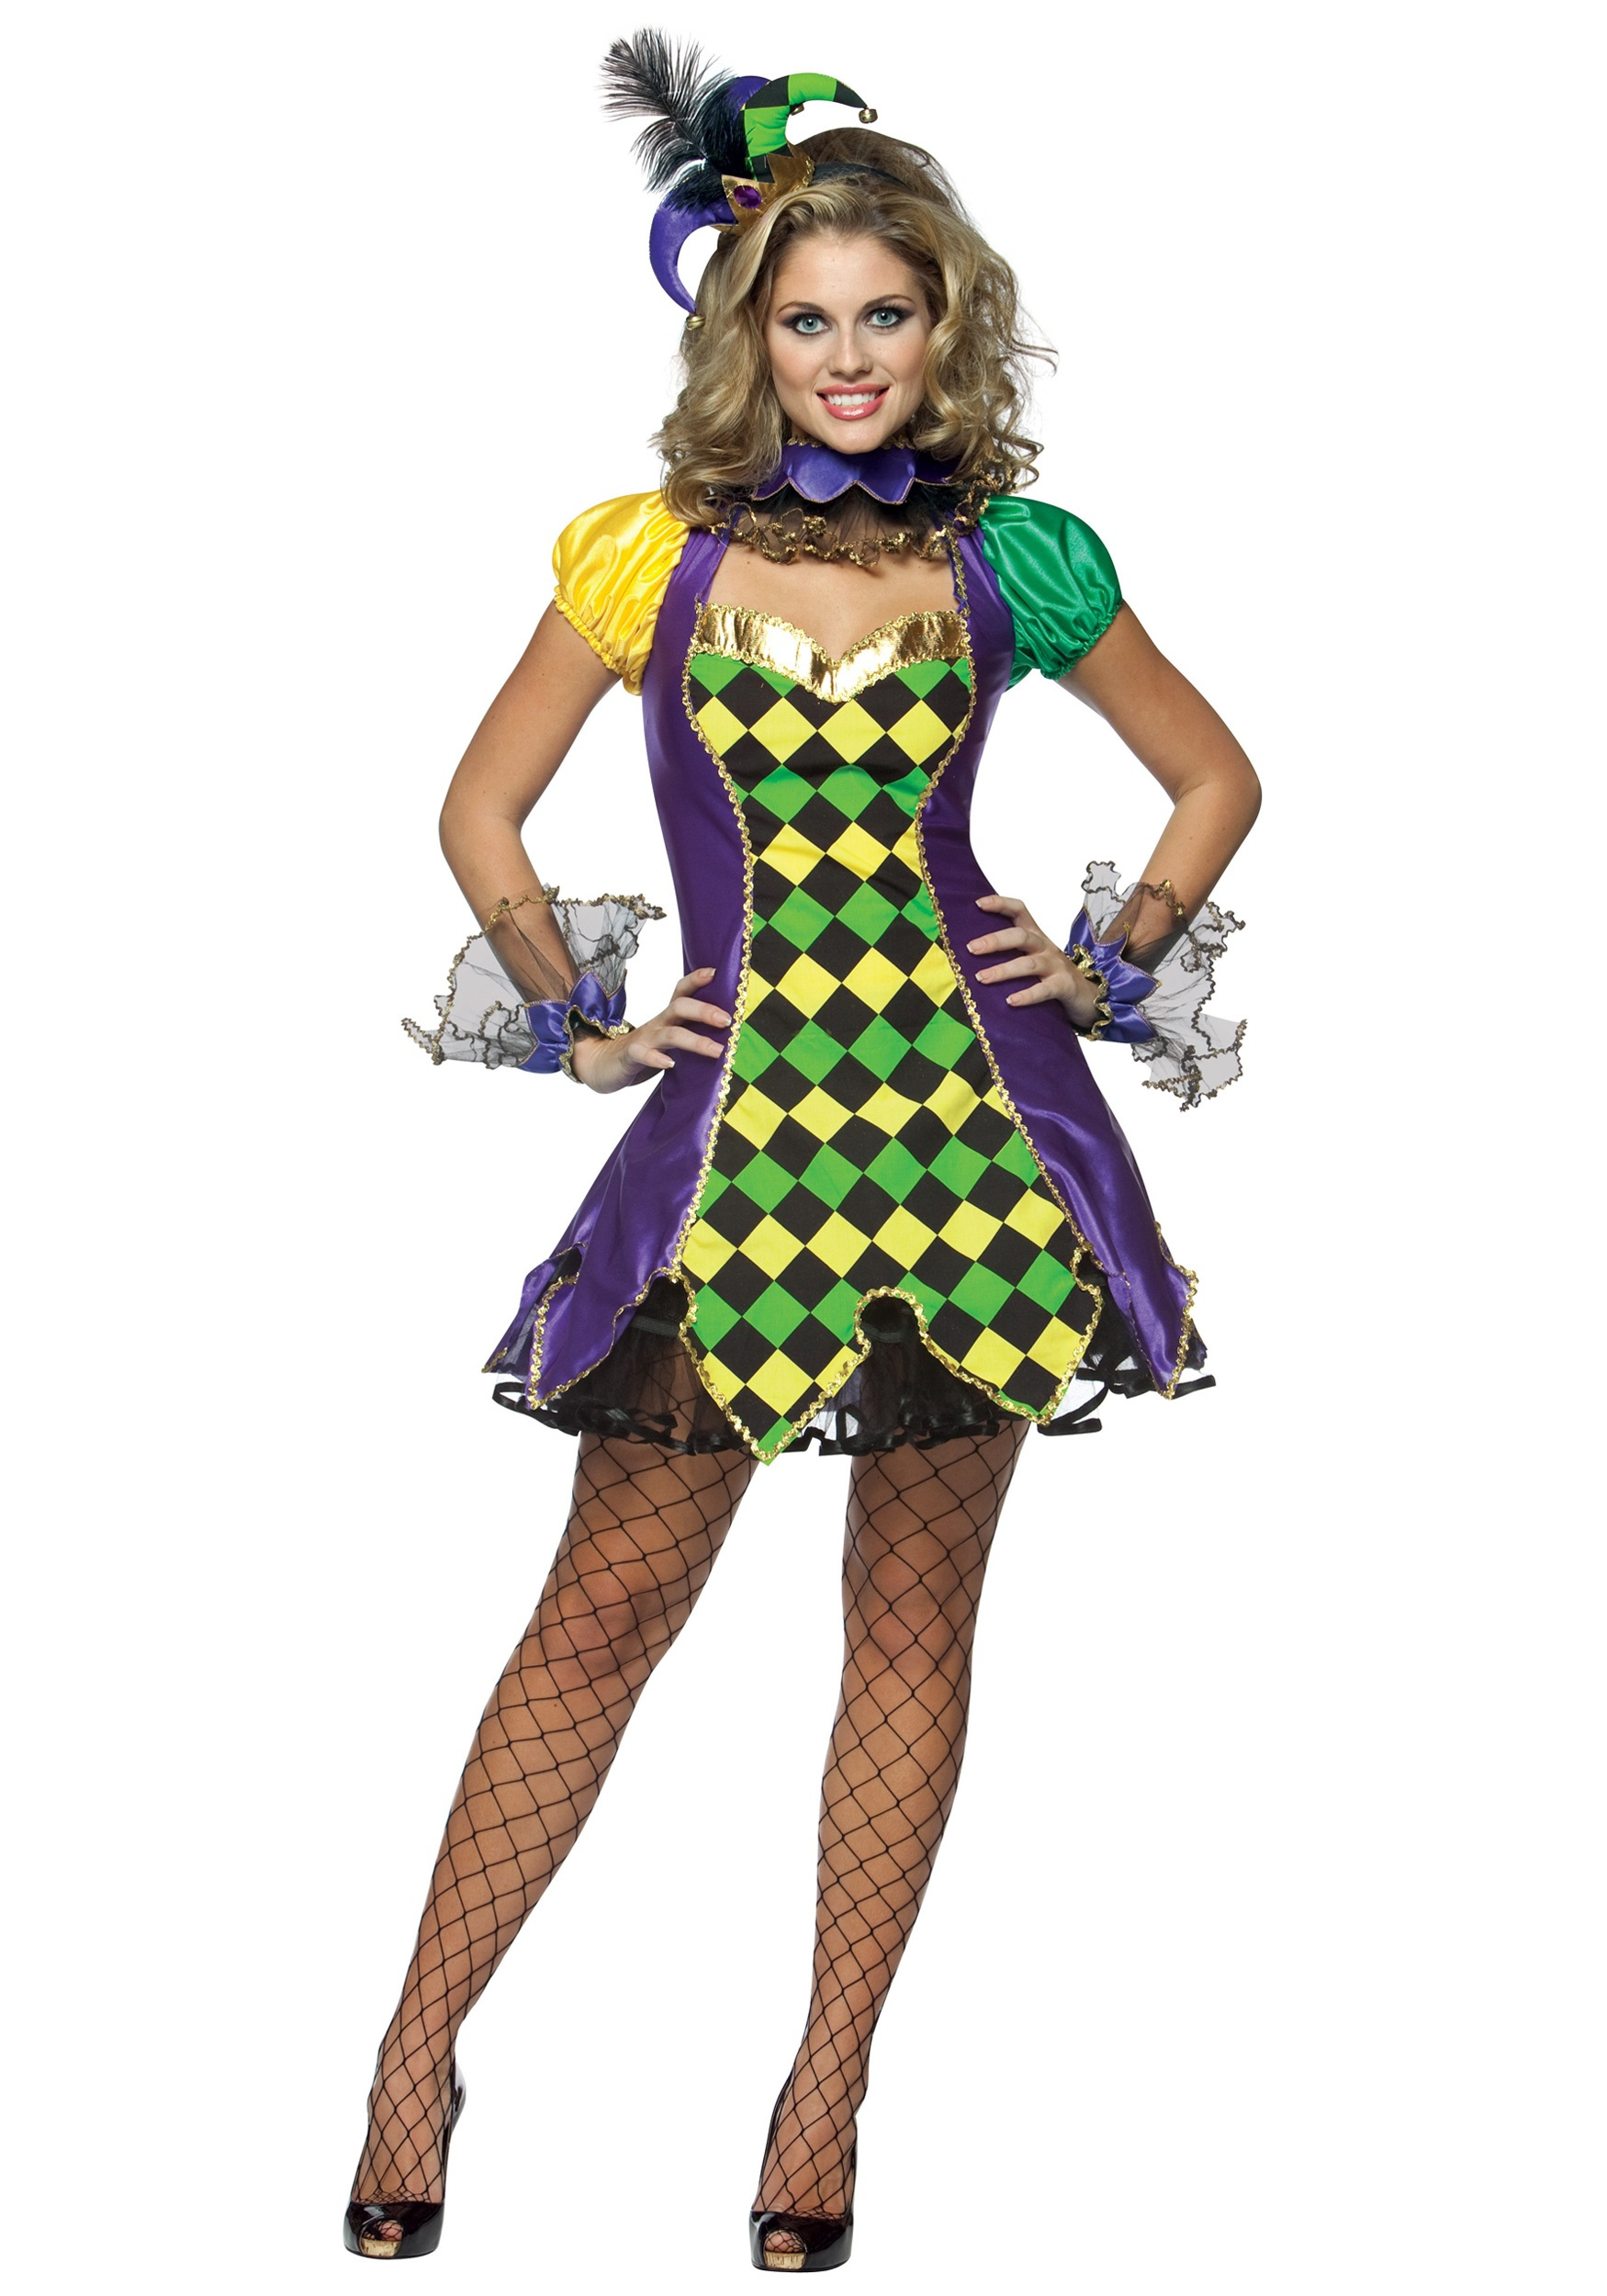 10 Fashionable Mardi Gras Costume Ideas For Women womens mardi gras jester costume ladies sexy mardi gras costumes